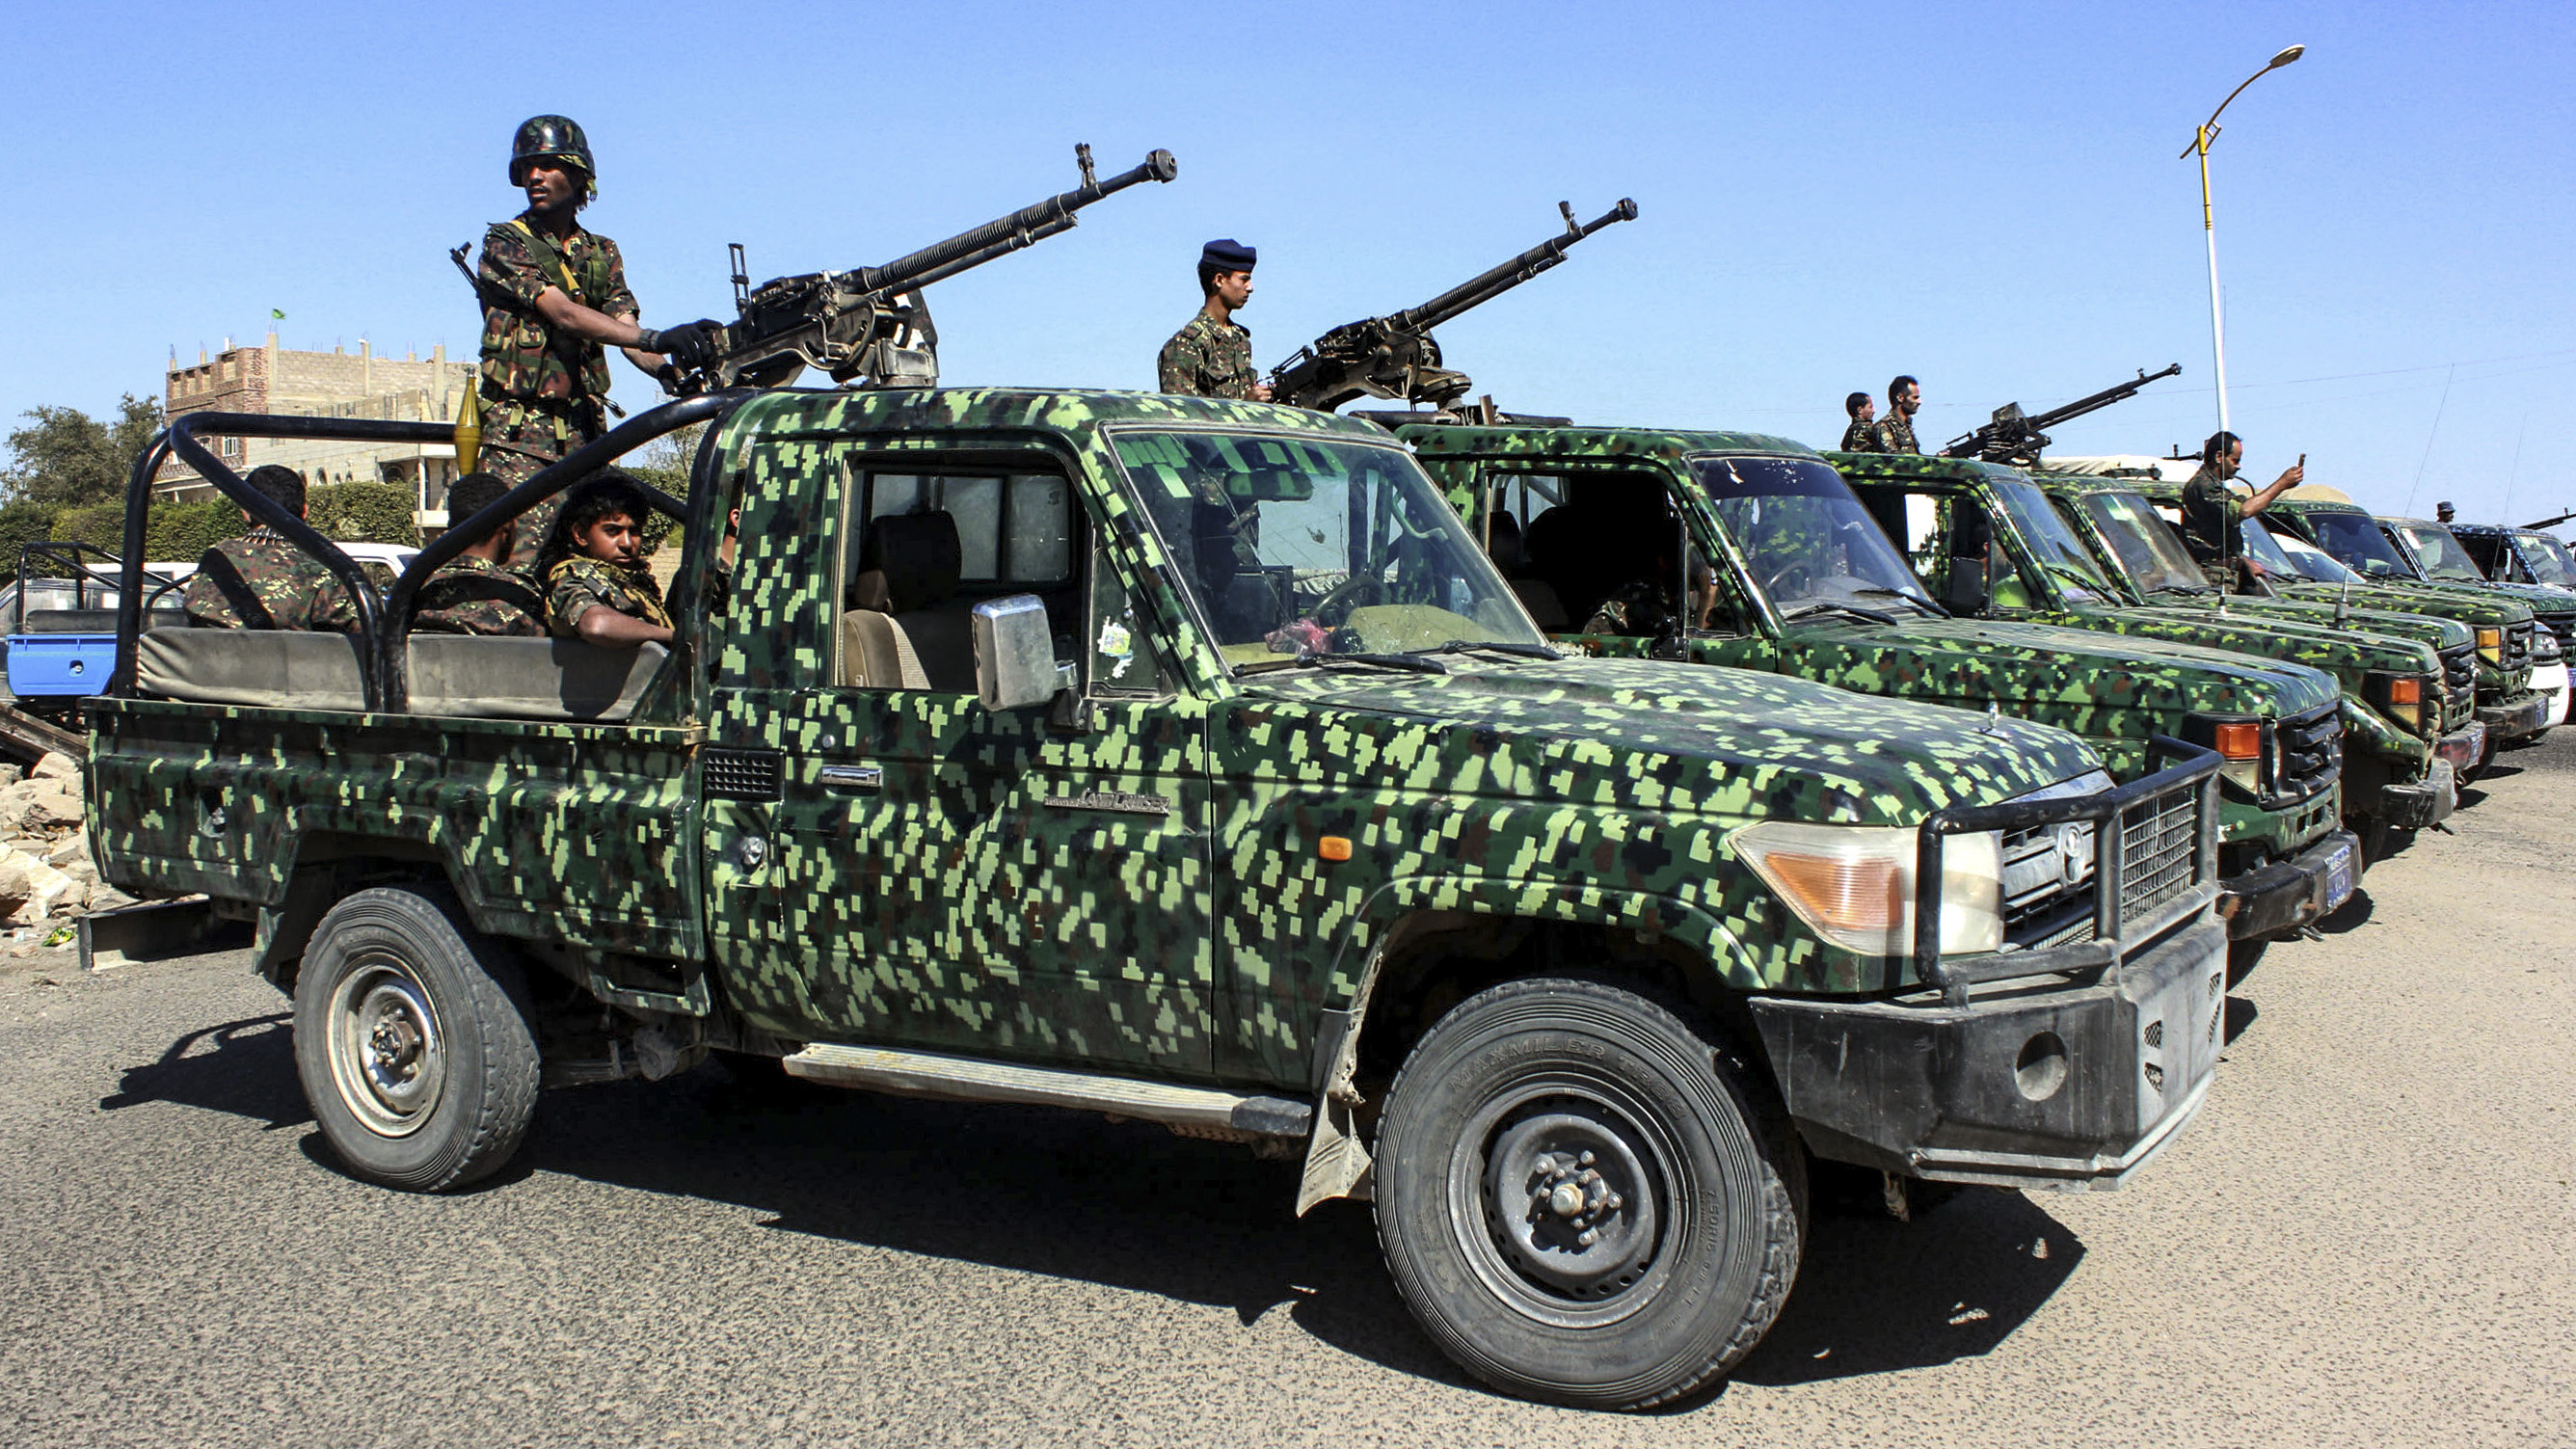 Yemeni soldiers man turrets in pickup trucks lining-up during a graduation ceremony for a new batch of cadets in the northwestern city of Saada on March 2, 2019, in a show of support against the Saudi-led intervention in the country. (AFP/Getty Images)